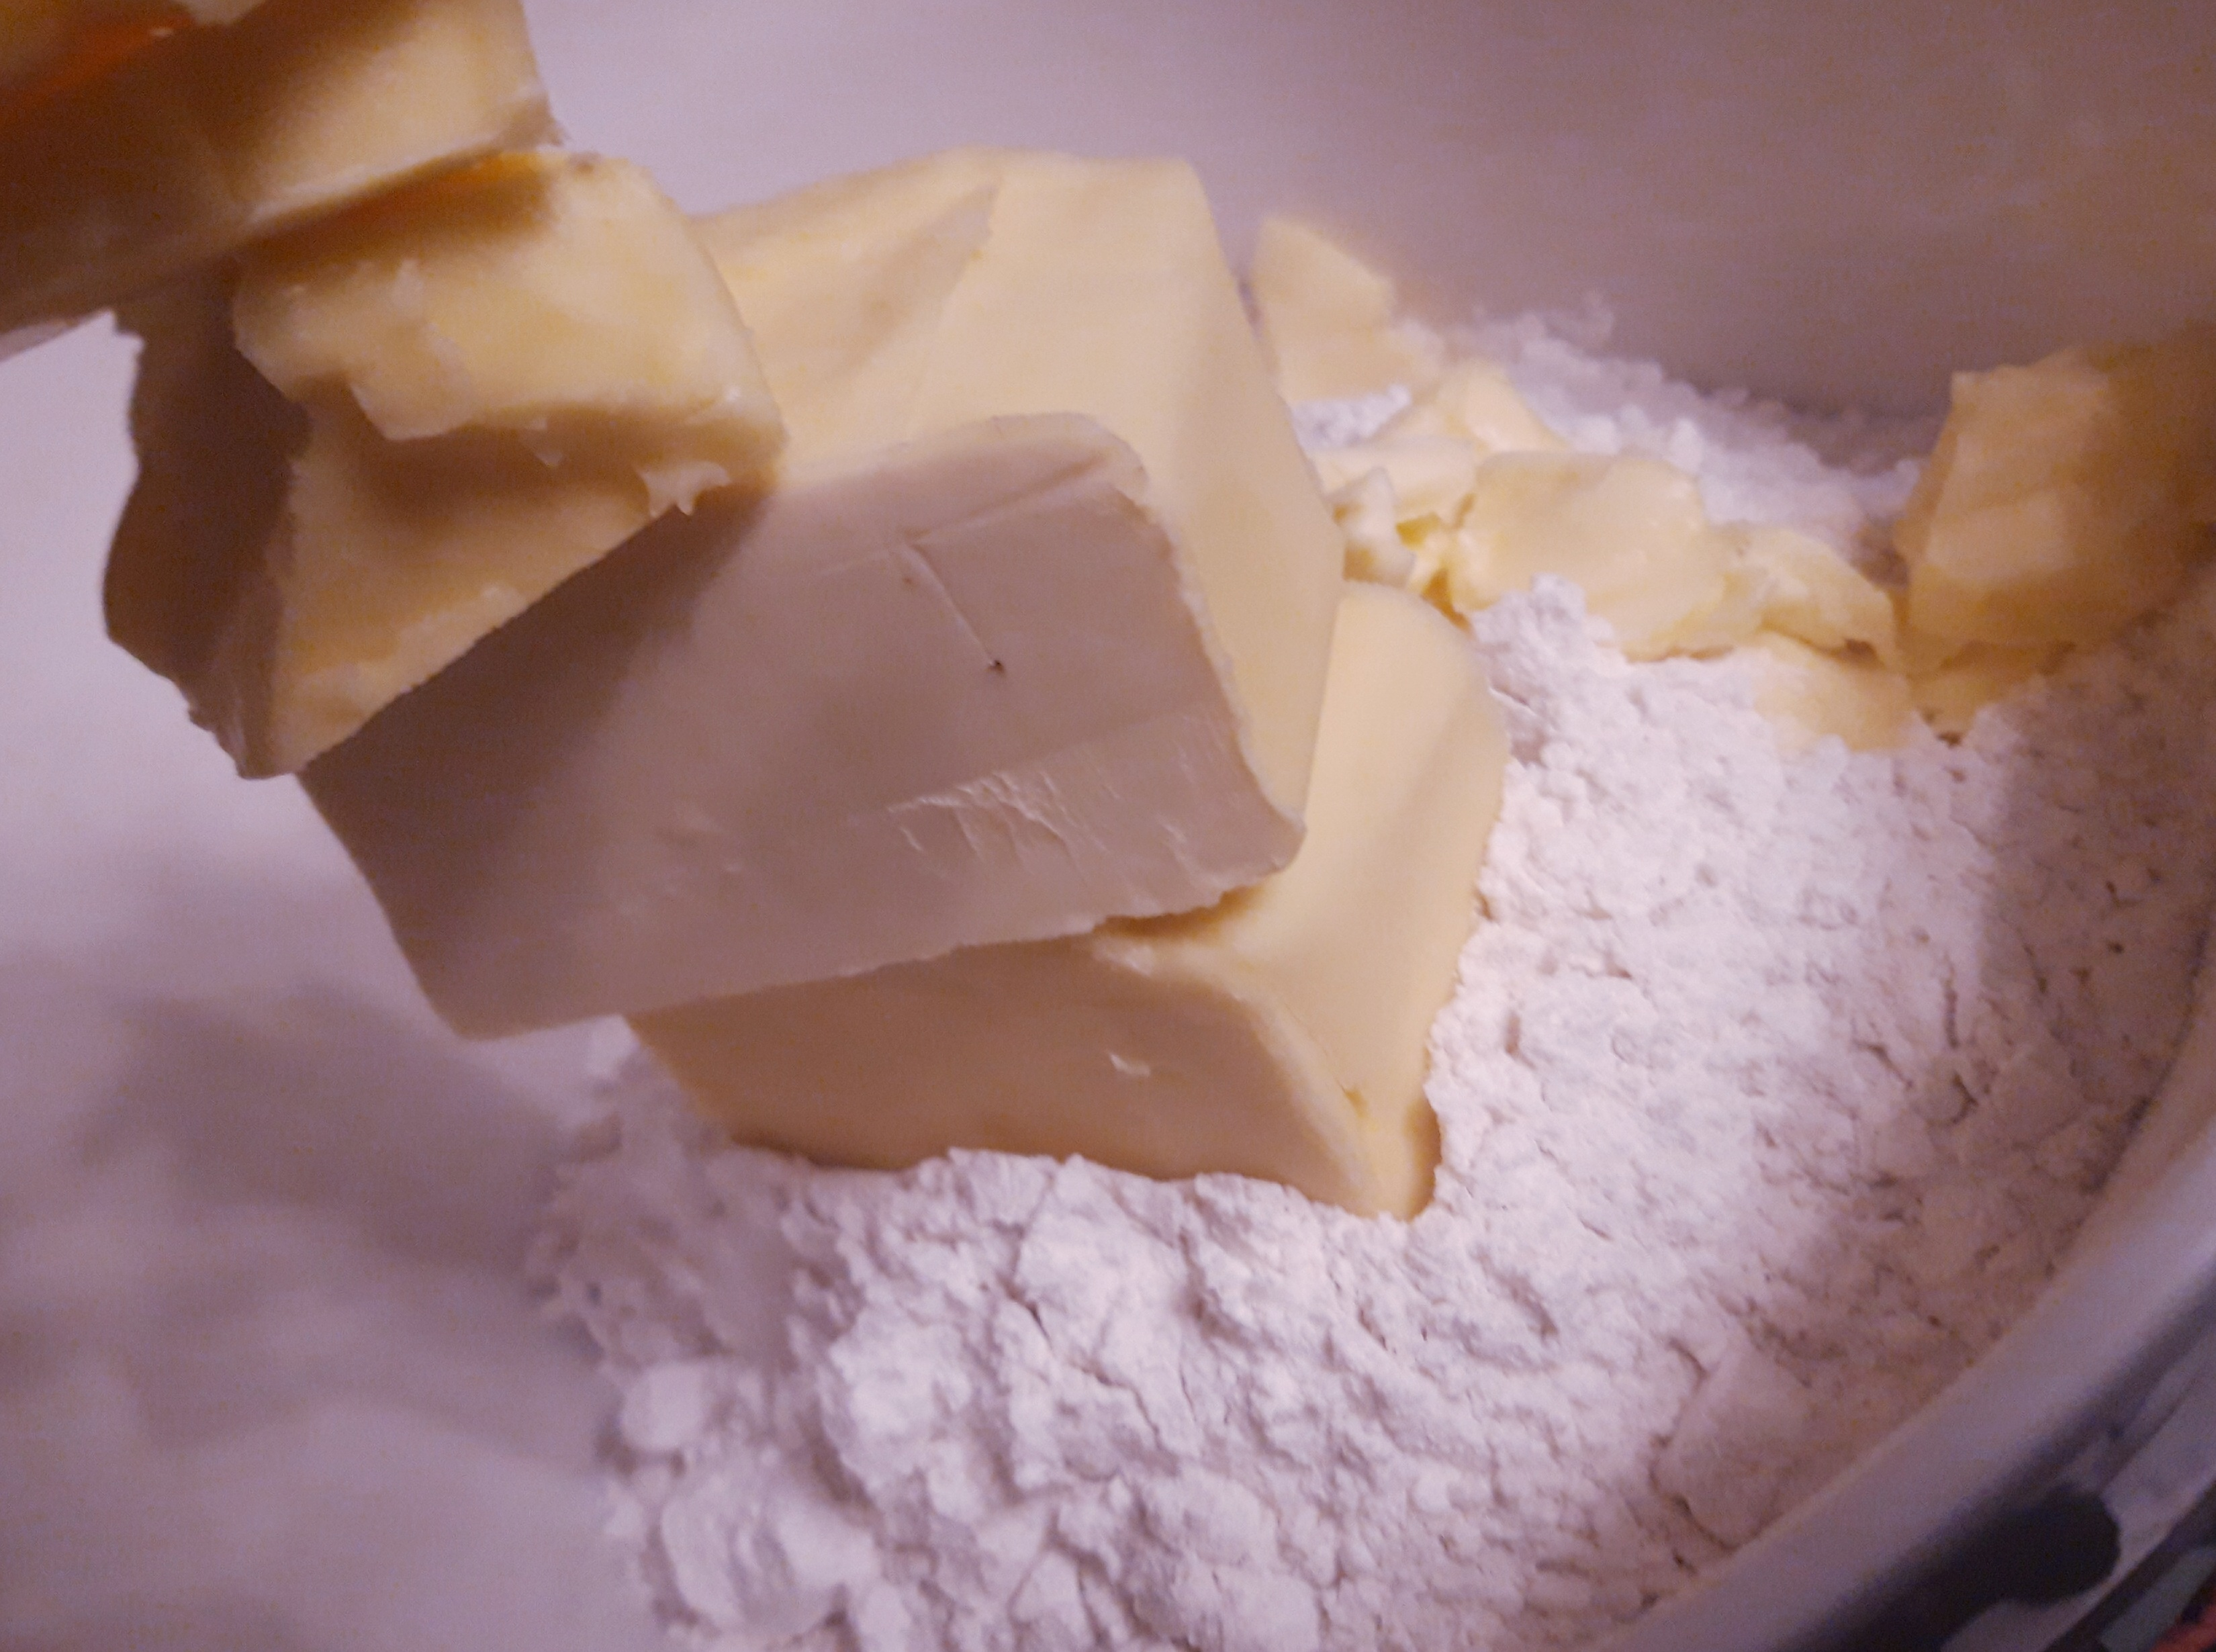 Measuring ingredients for pastry